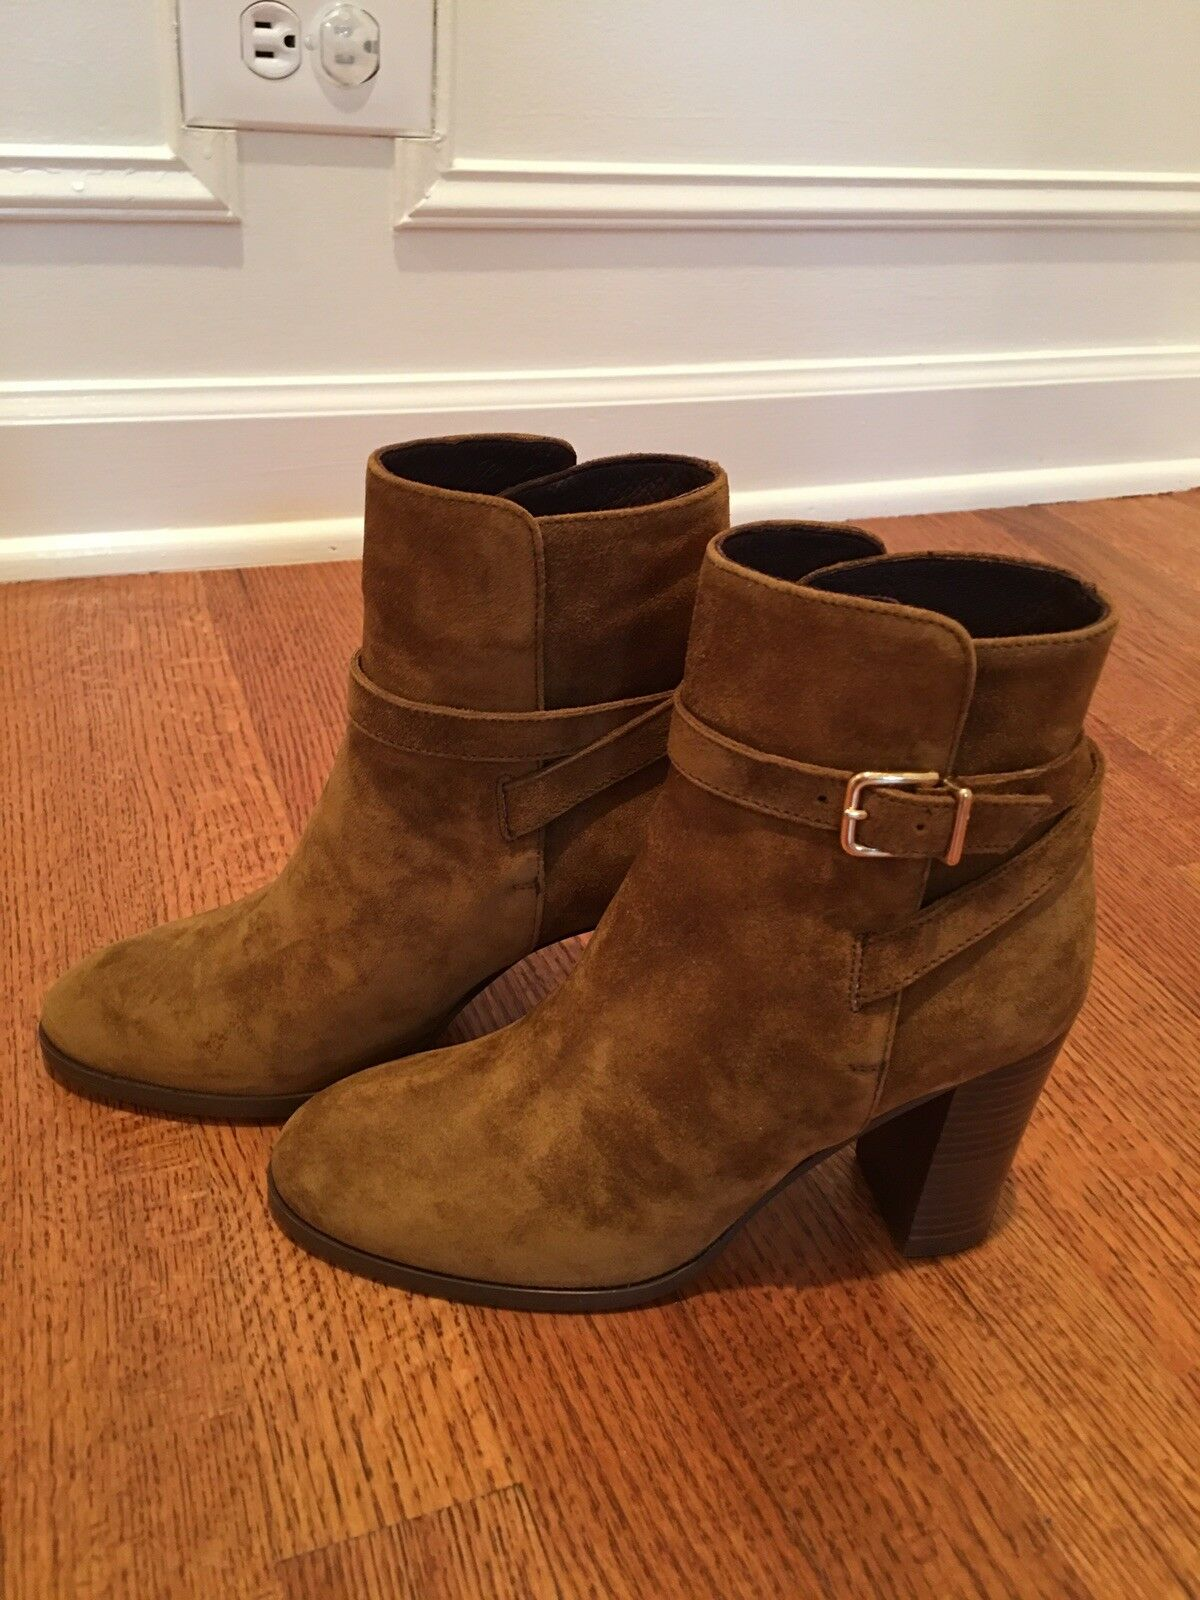 JCrew Suede  Wravor Buckle Ankle stivali, 6, Vintage Amber, F8008, Fall 2015  all'ingrosso a buon mercato